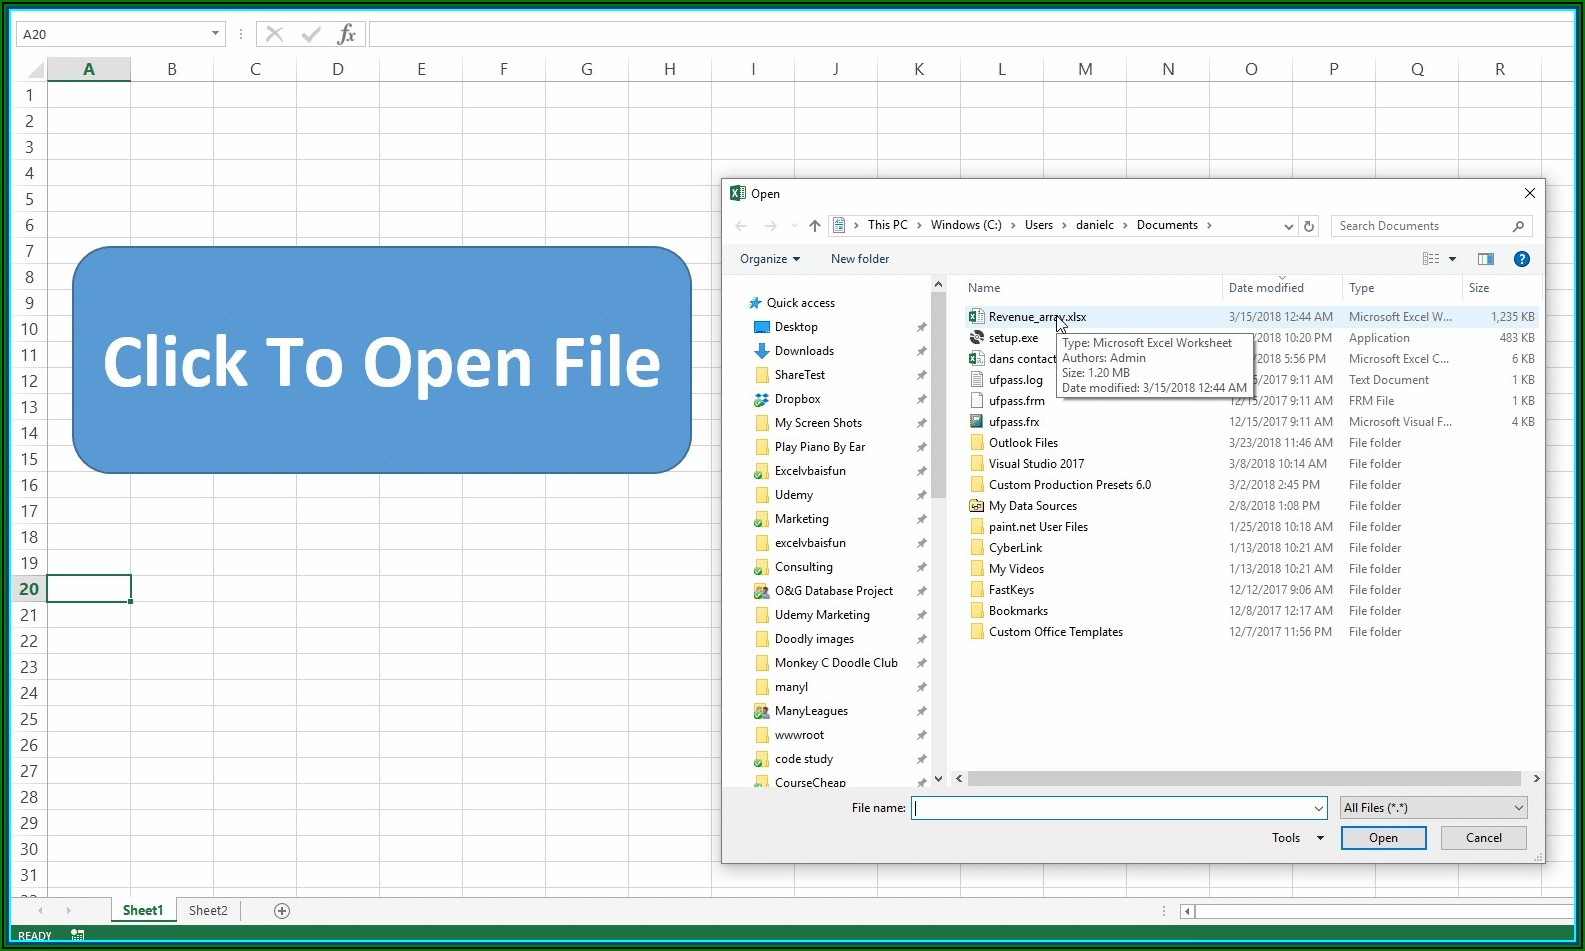 Excel Vba Workbook Close Without Save